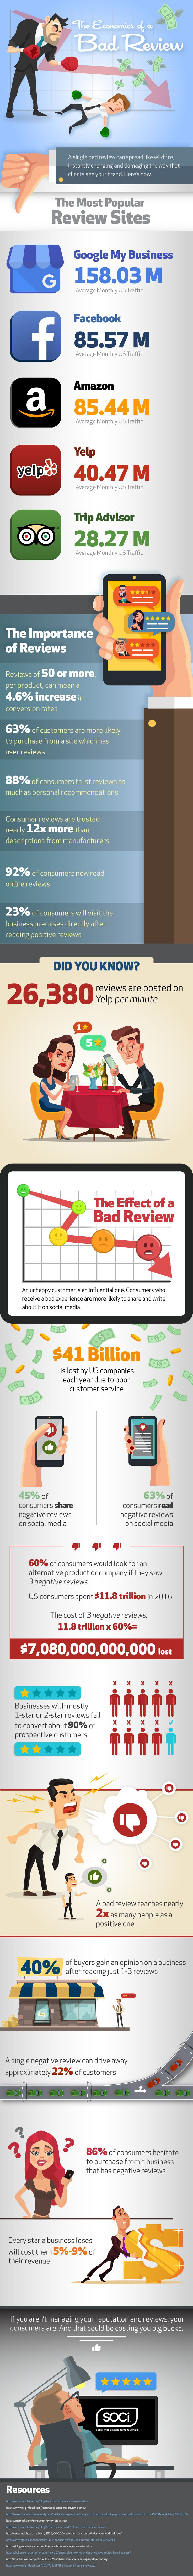 The-Economics-of-a-Bad-Review-infographic